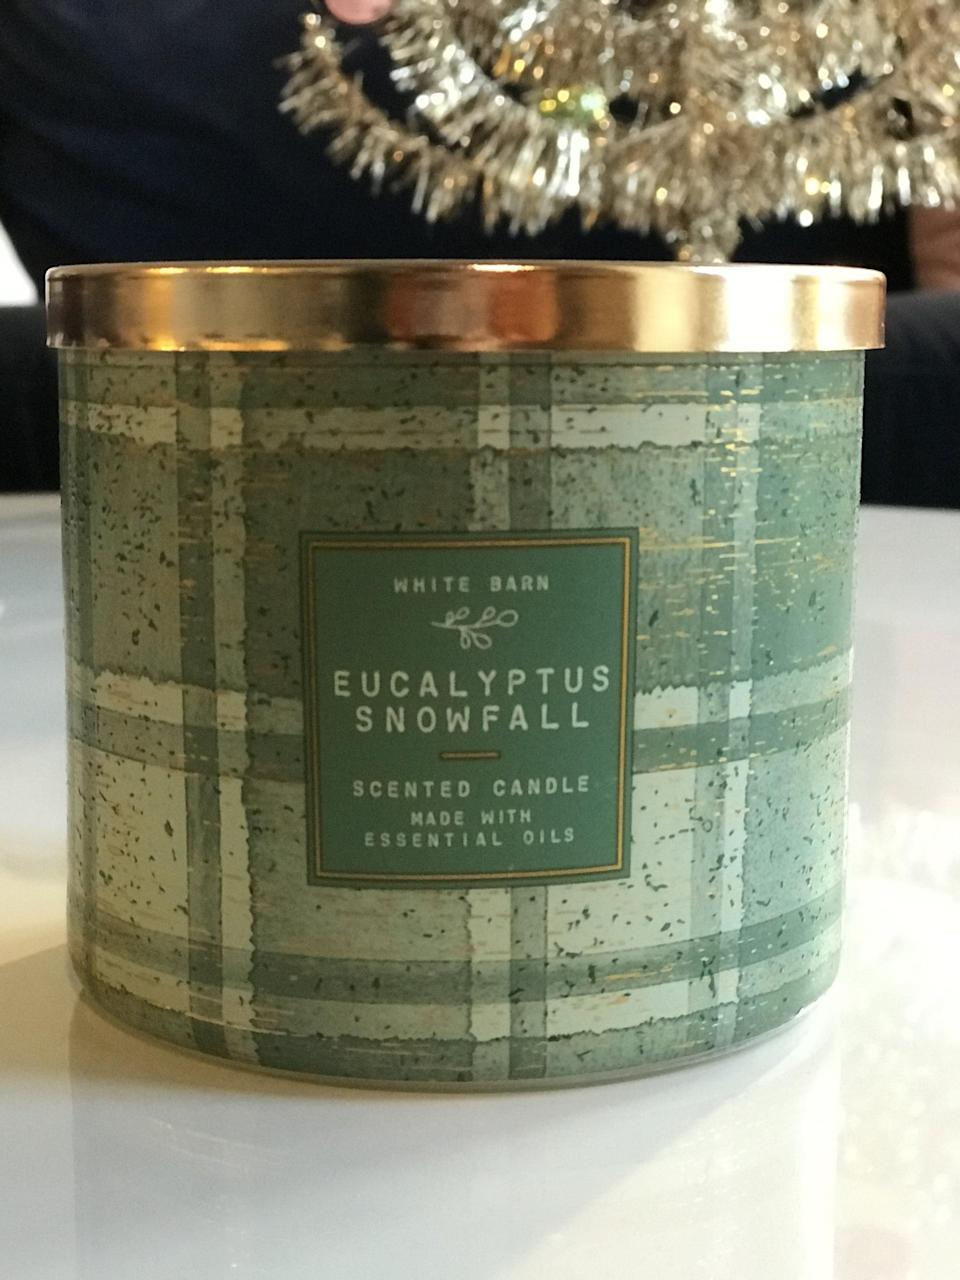 <p><span>Eucalyptus Snowfall 3-Wick Candle</span> ($15, originally $25)</p> <p><strong>What It Smells Like:</strong> This has an essential oils, clean aroma to it. I could light this regularly and never get sick of it.</p>